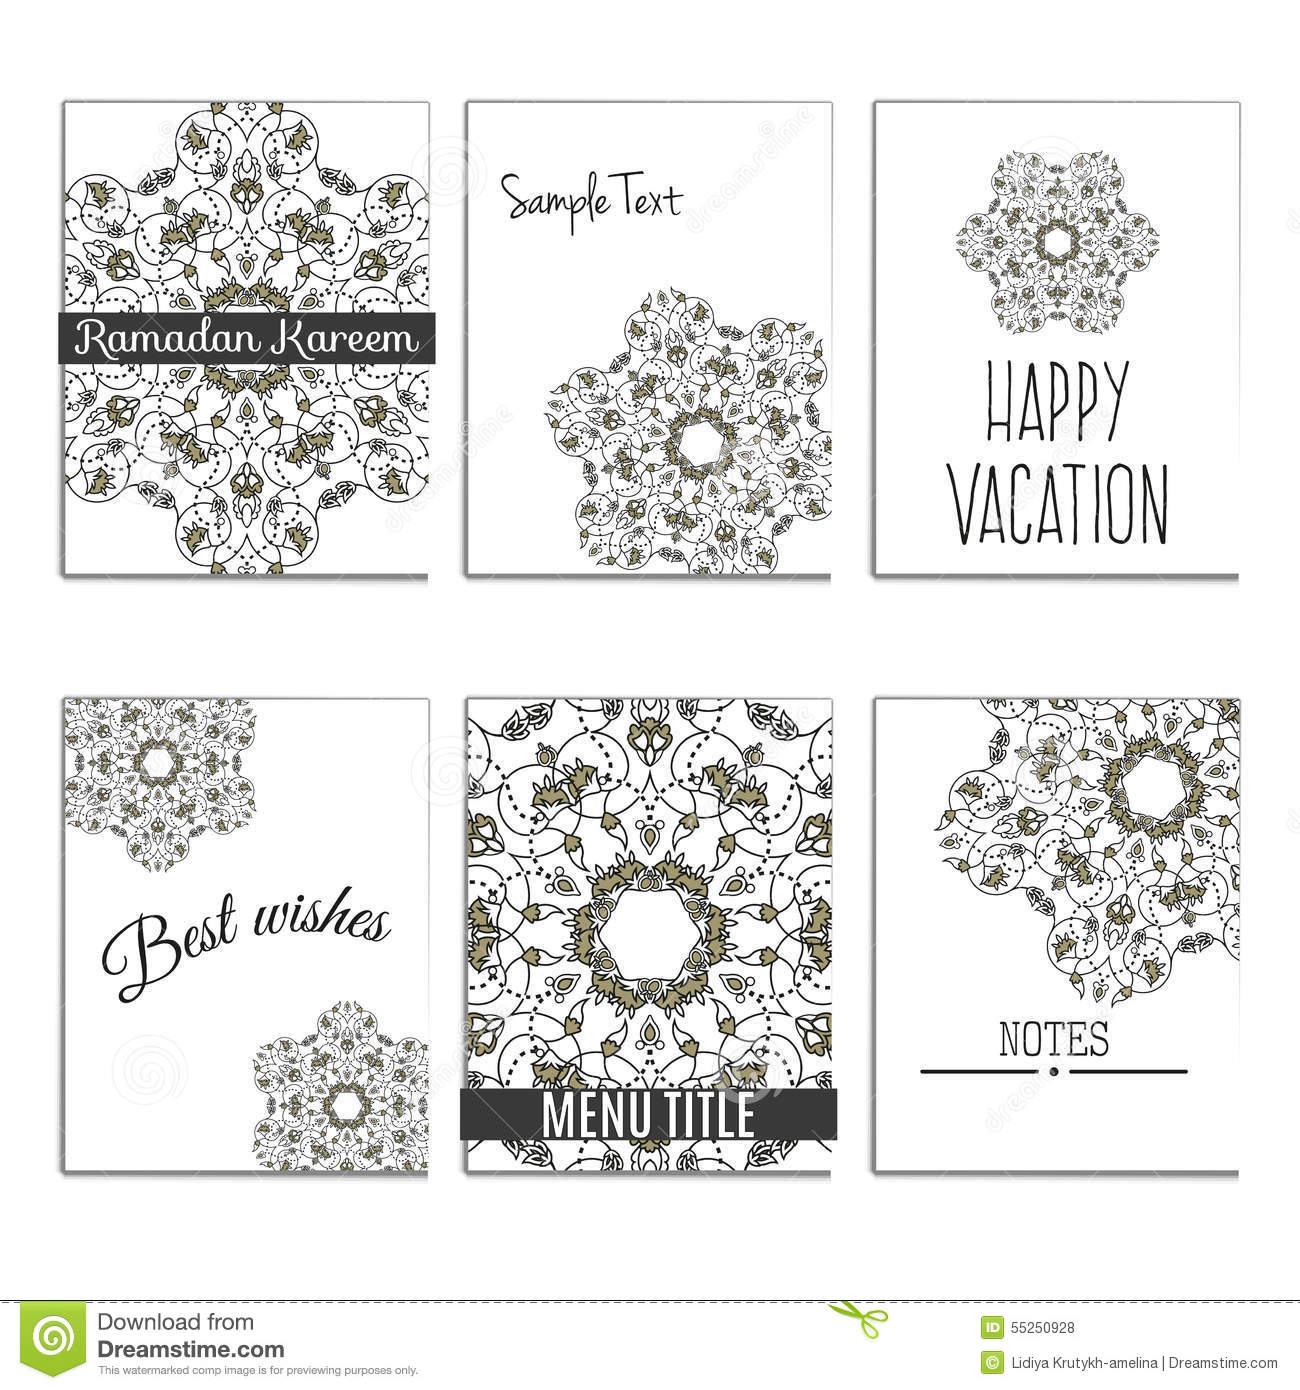 Quran Book Cover Template : Universal templates with moroccan islamic ornament